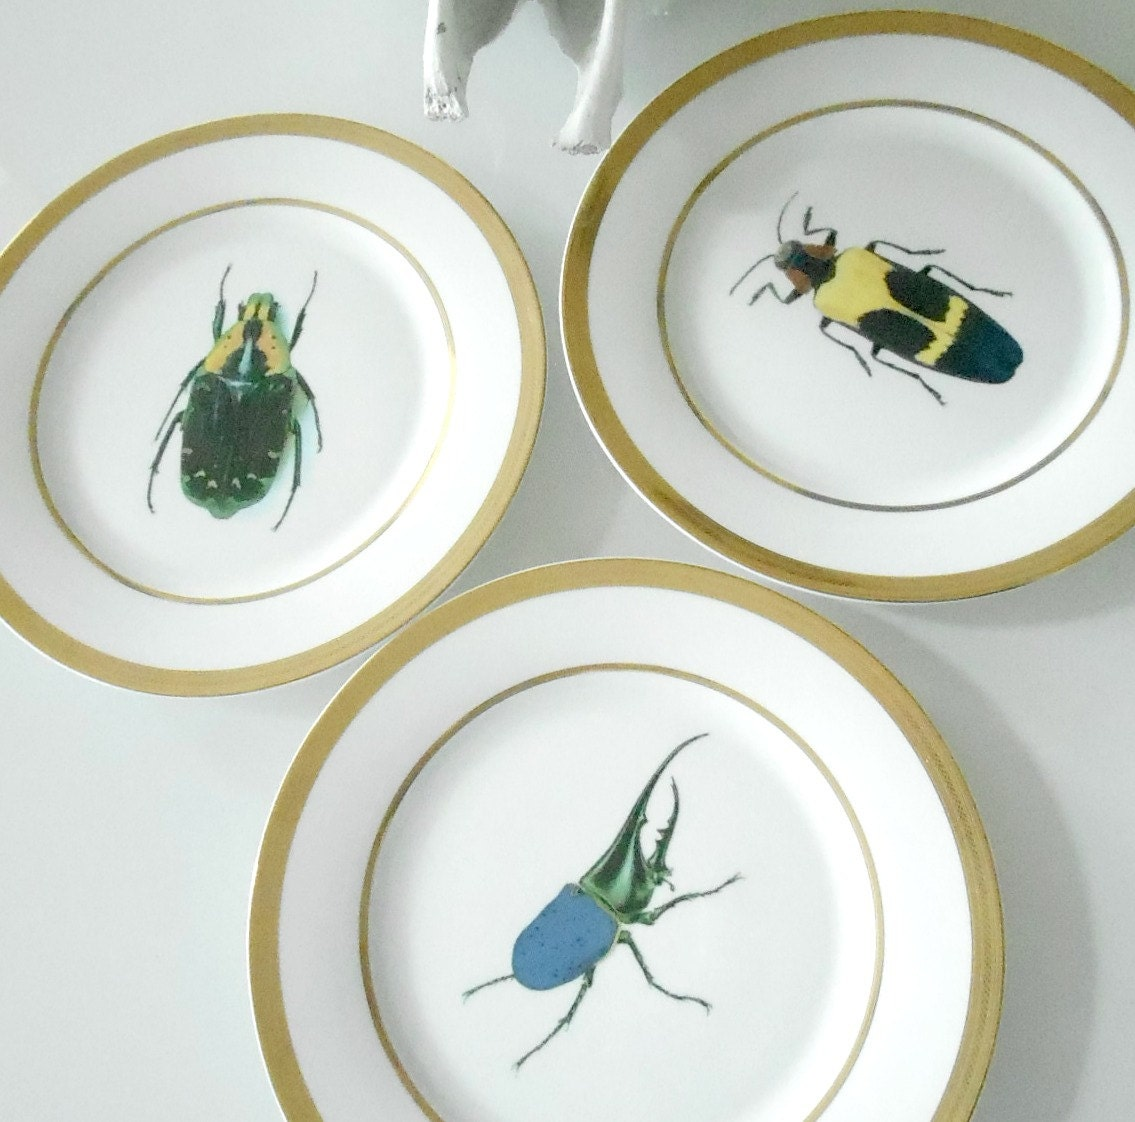 Sale Gold Porcelain Buginsect Dinner Plates & unusual dinnerware gold porcelain bug/insect dessert plates ...